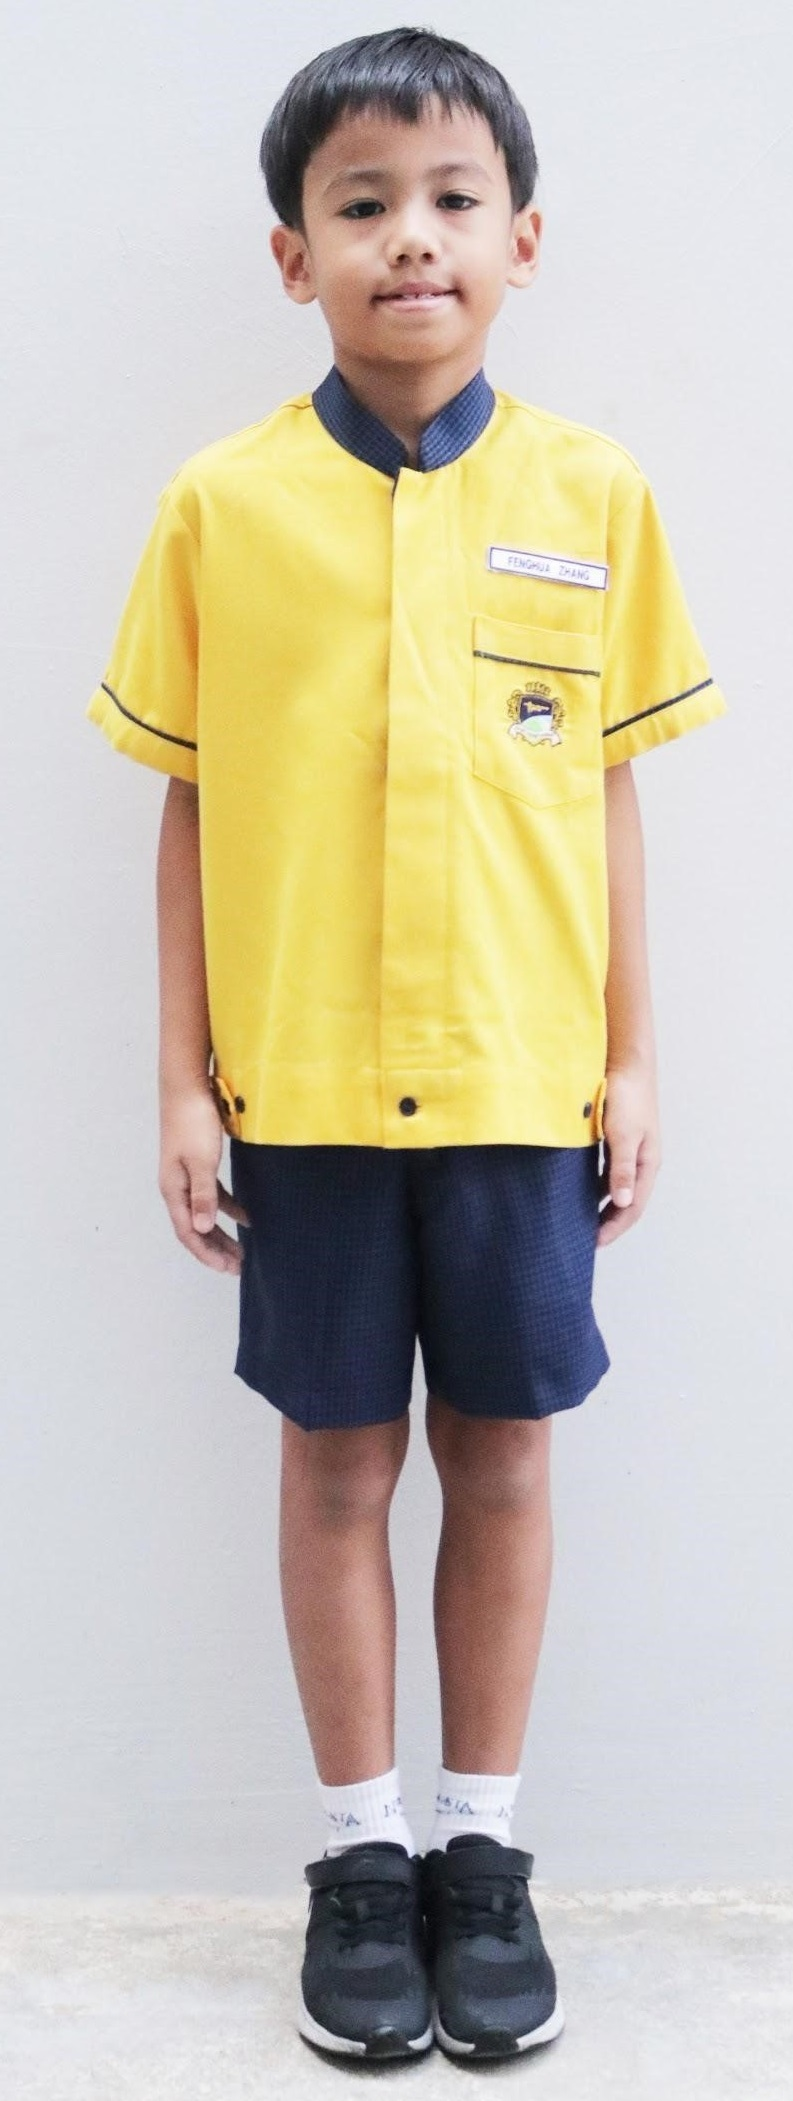 Boys Attire Uniform (front).jpg